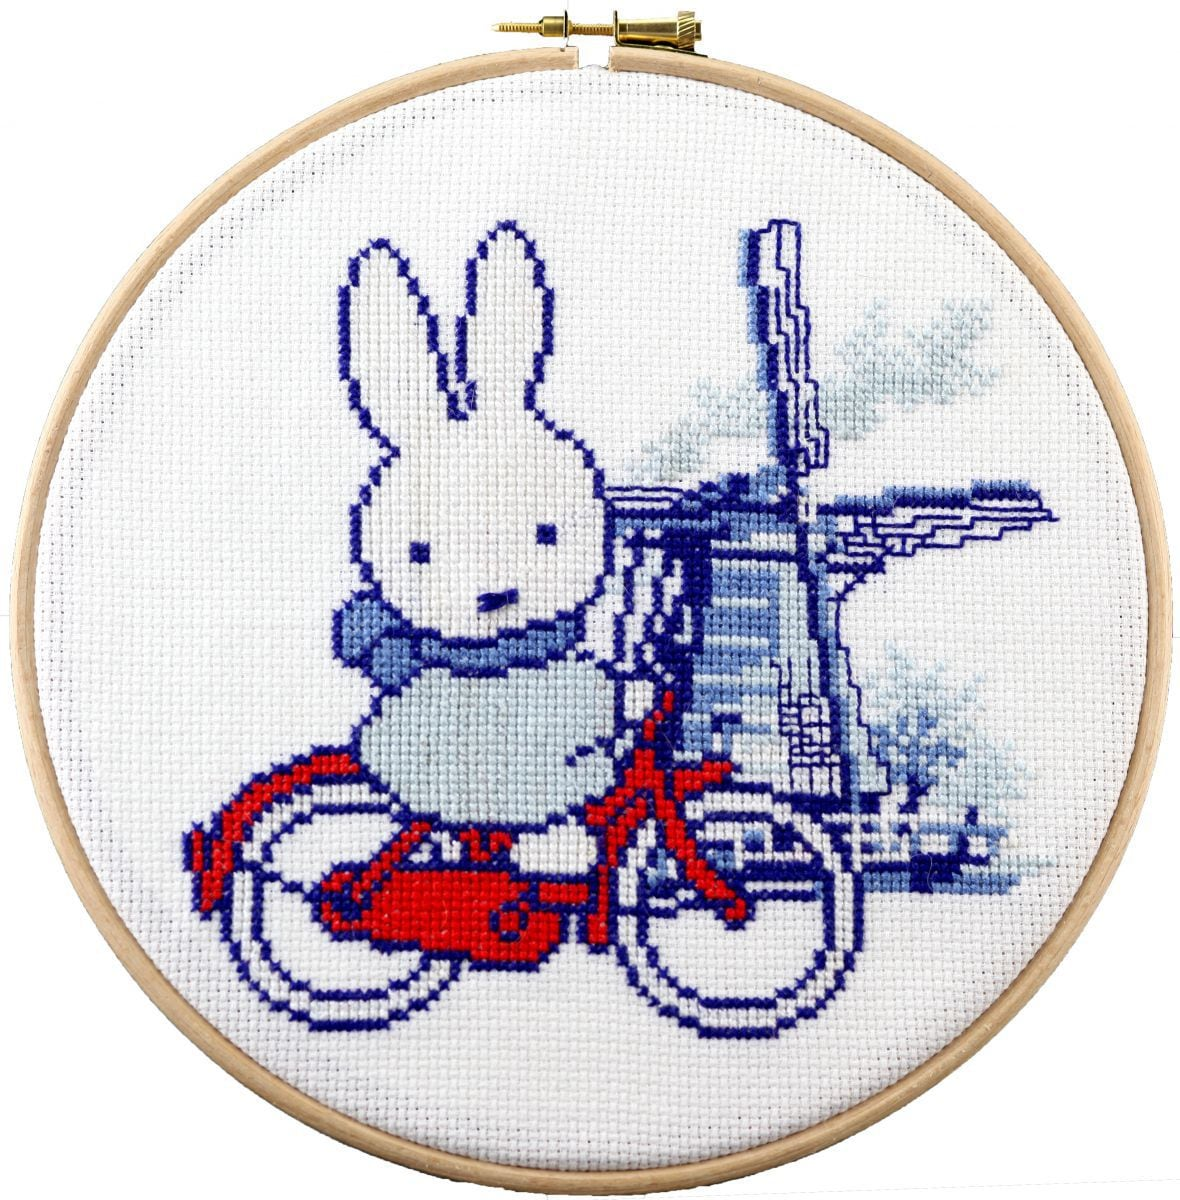 embroidery kit miffy cycling through the netherlands